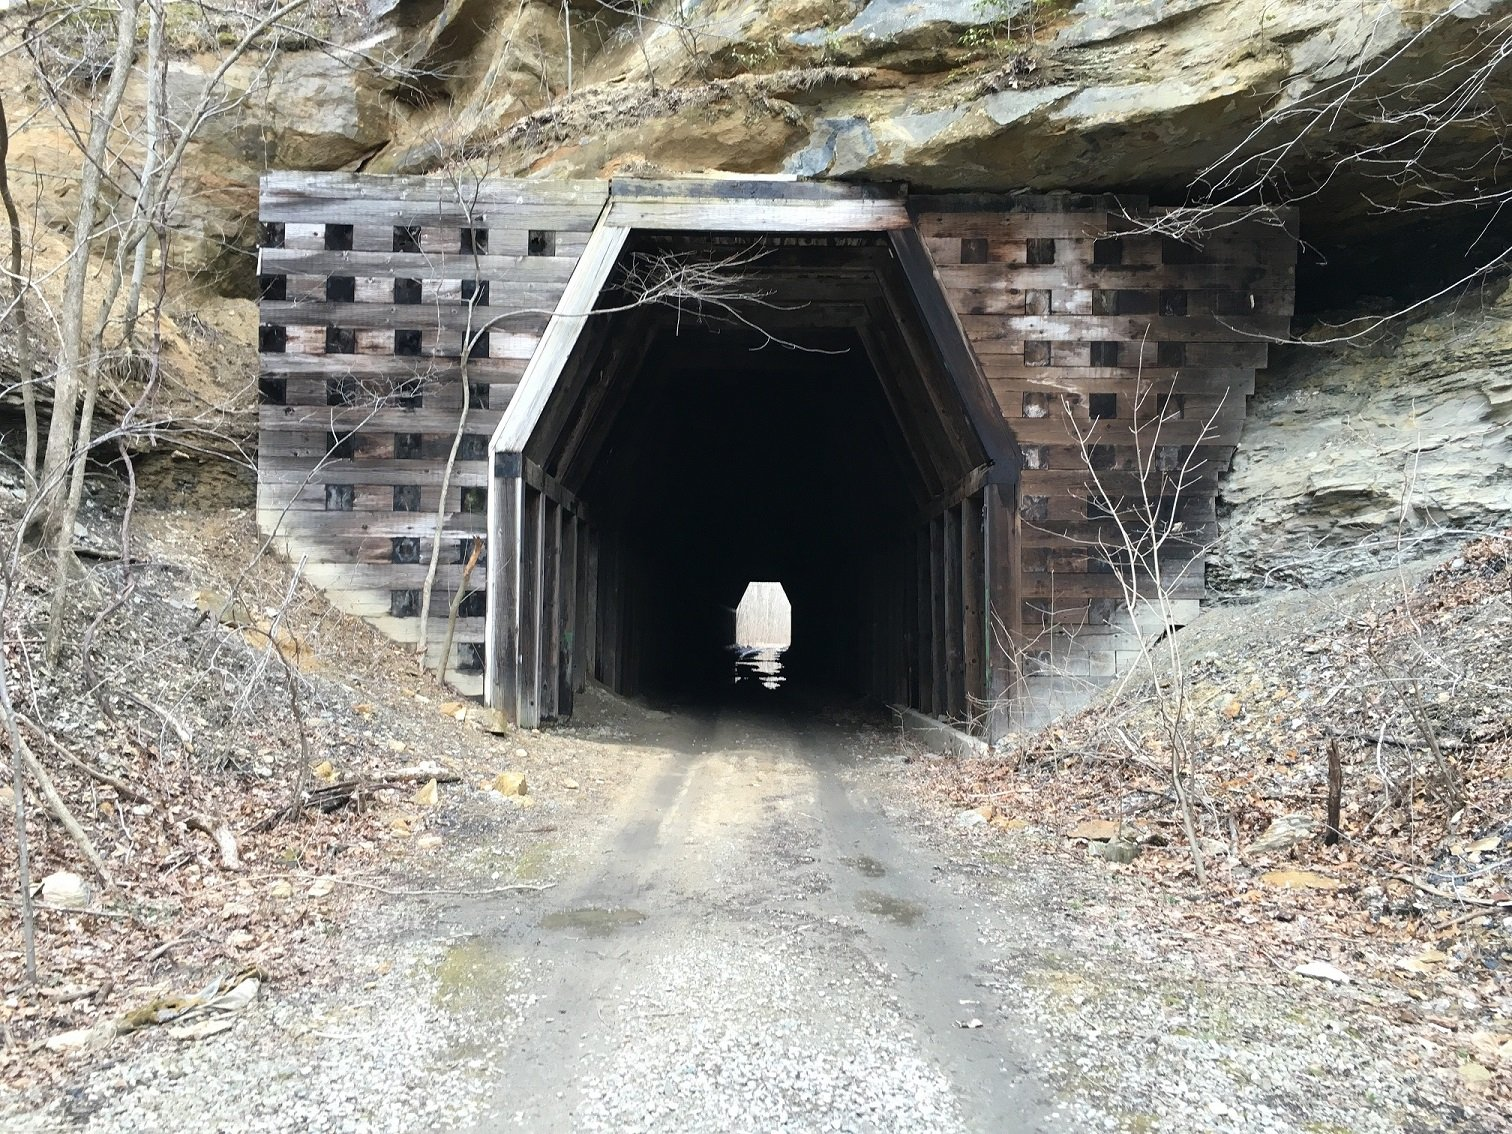 Length of tunnel from western opening, March 1, 2016